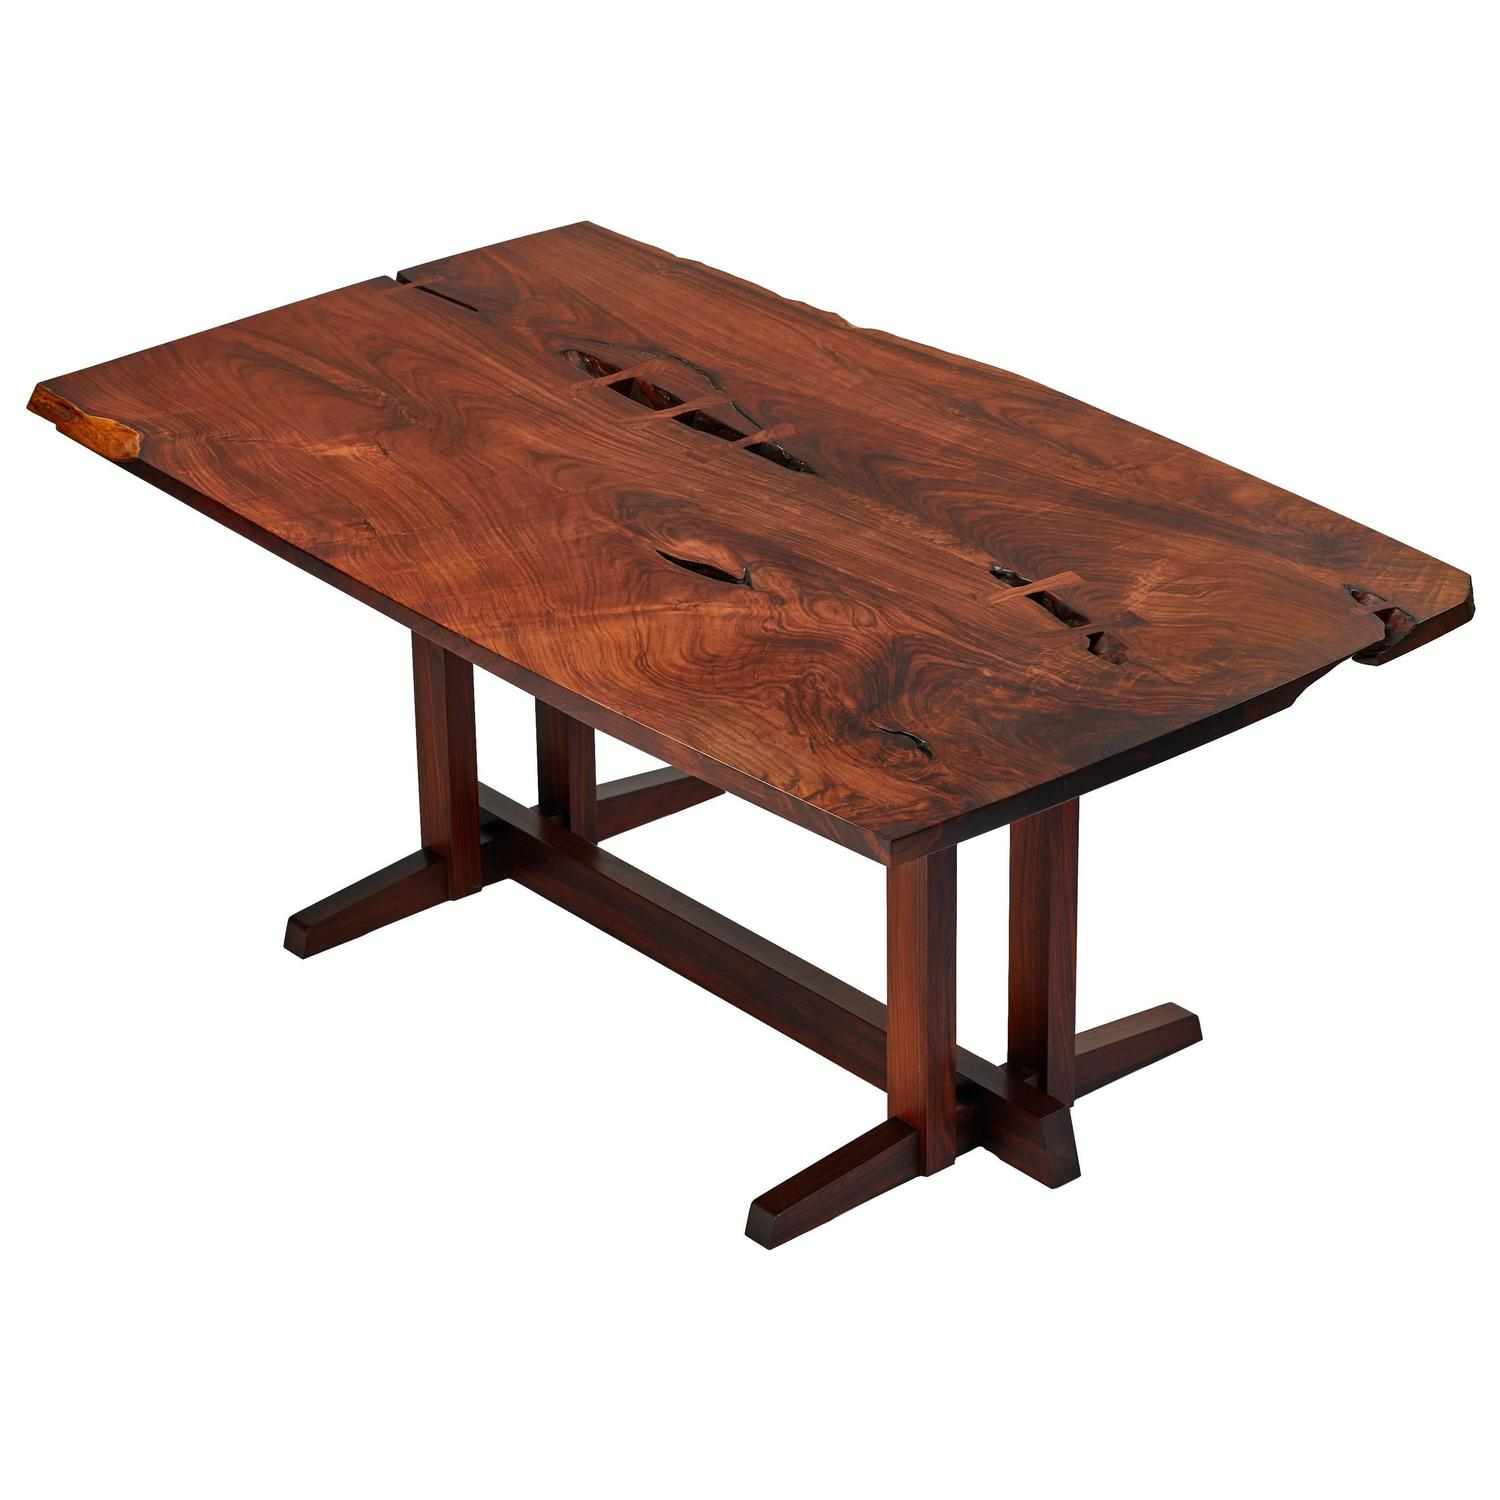 Japanese Dining Table For Sale George Nakashima Masterwork Quotsingle Board Quot Solid Rosewood